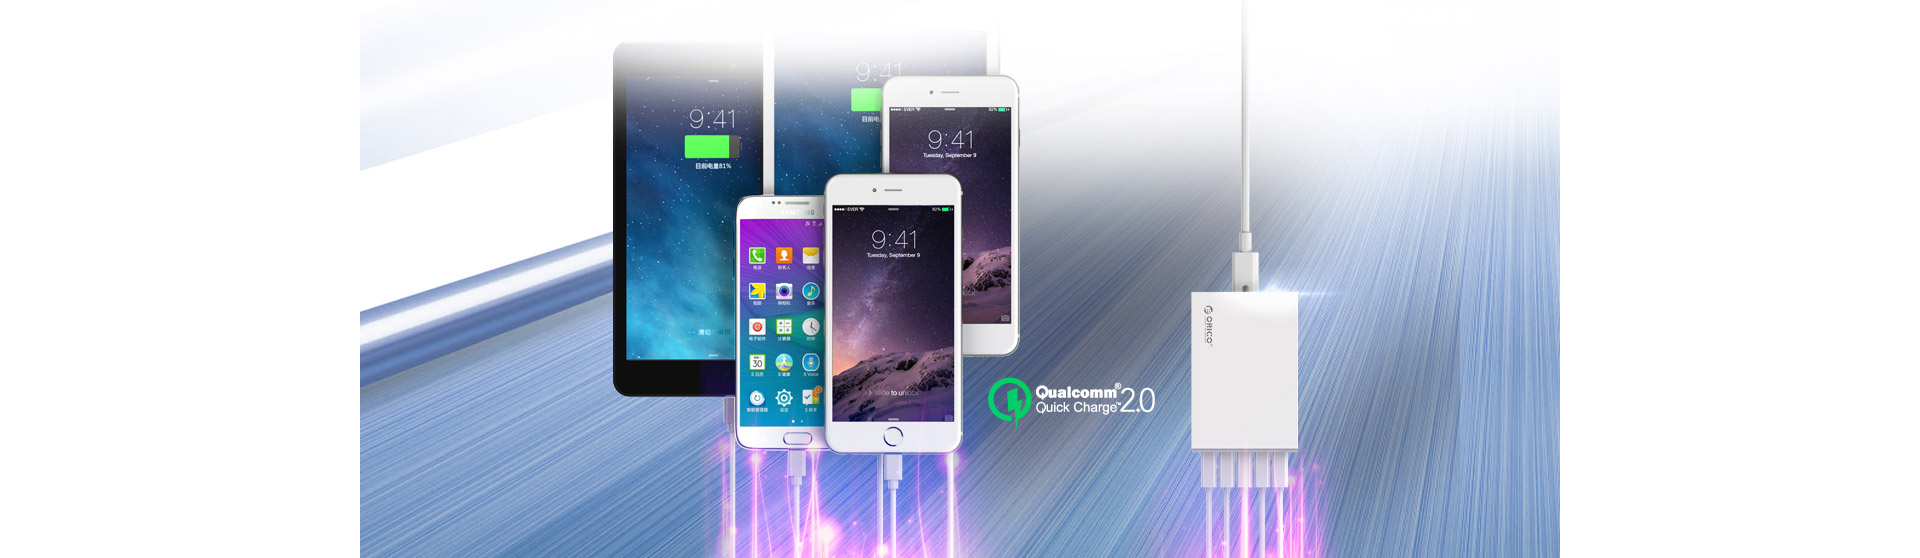 charger with QC2.0 technology, faster than you expect